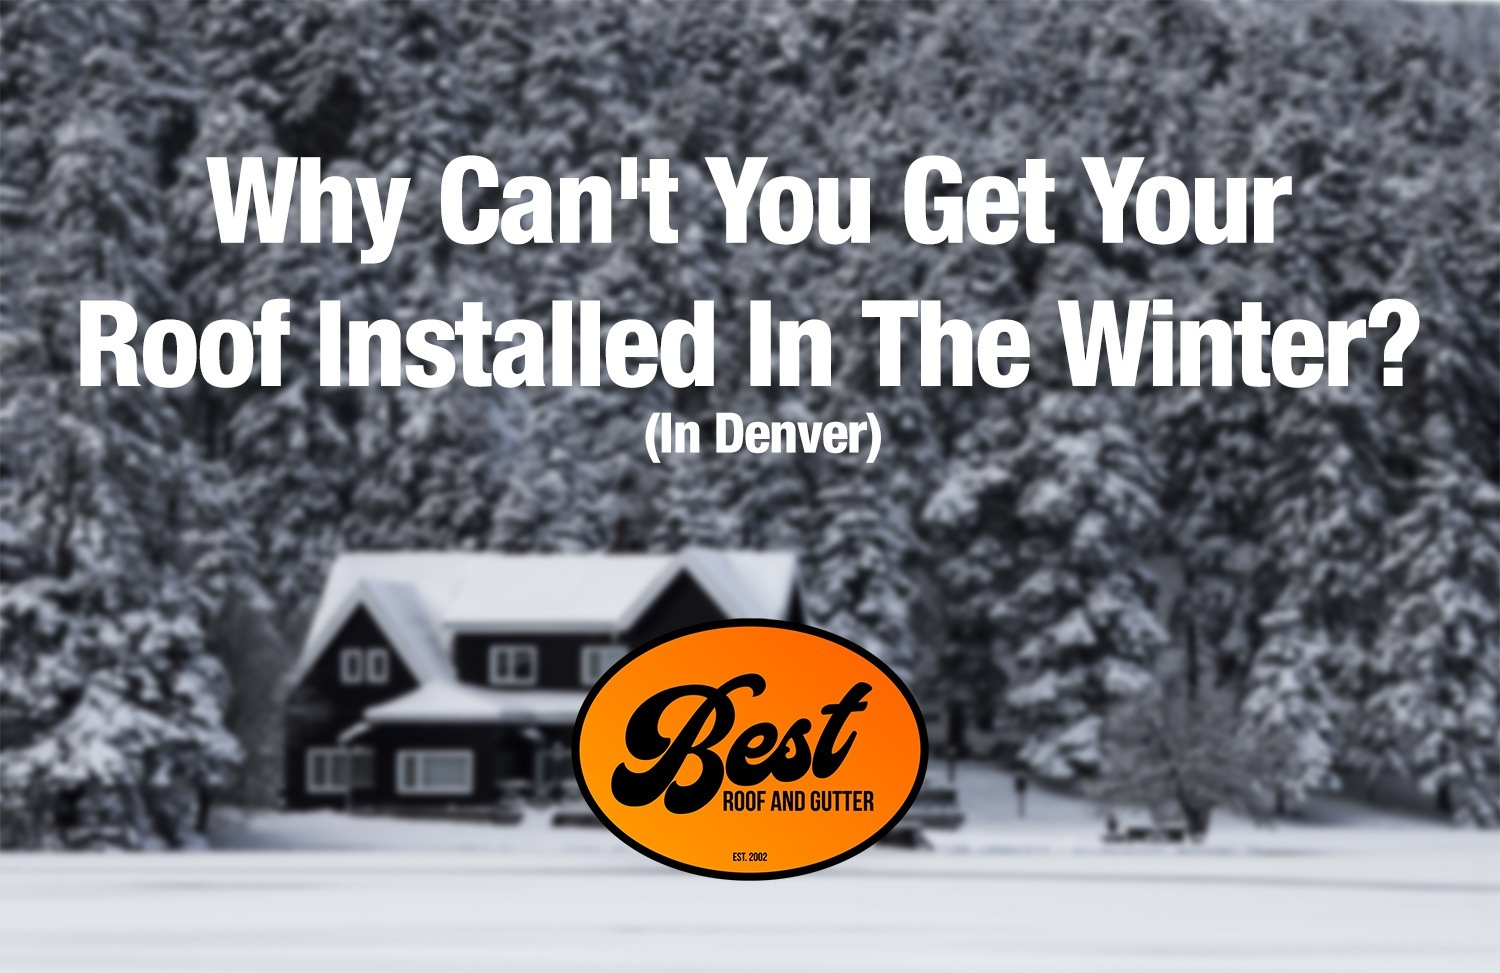 Why Can't You Get Your Roof Installed In The Winter? (Denver)